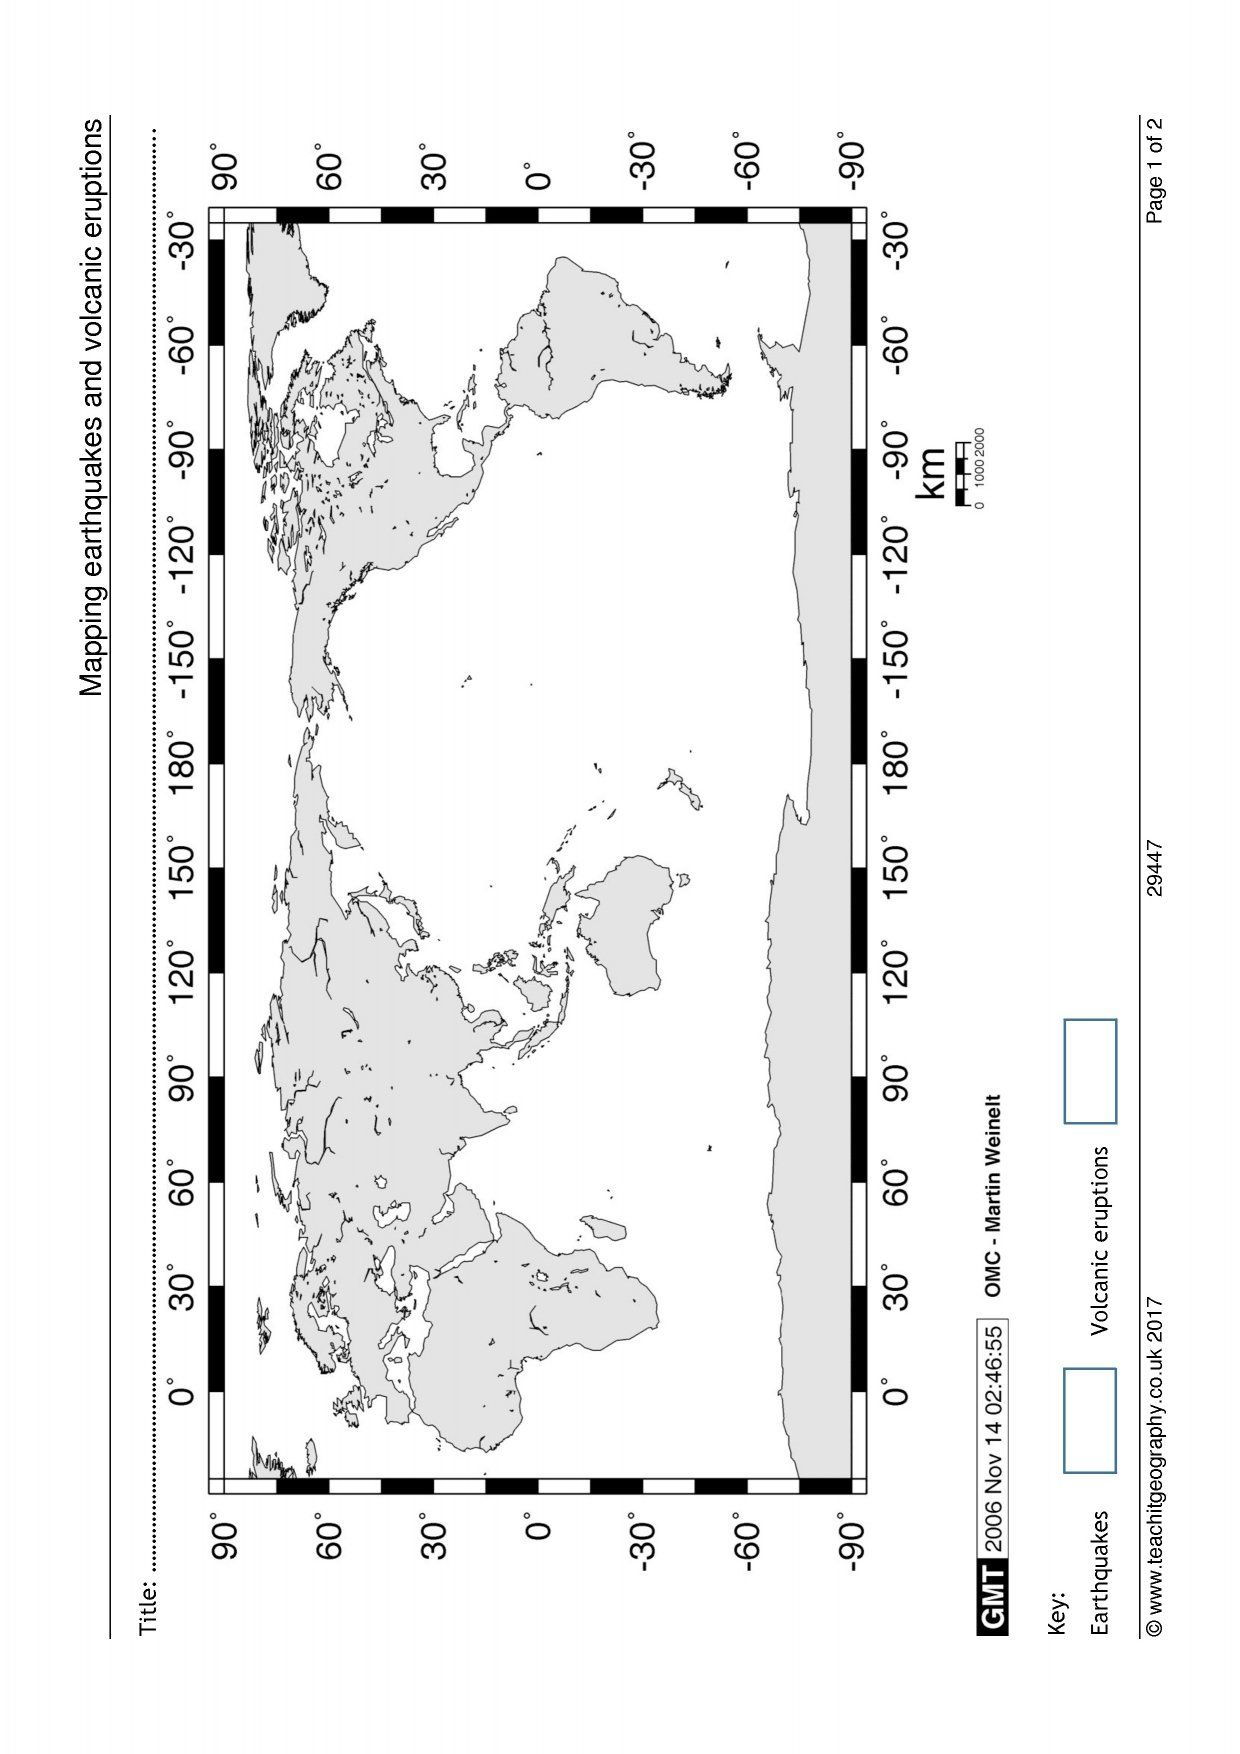 Mapping Earthquakes And Volcanic Eruptions